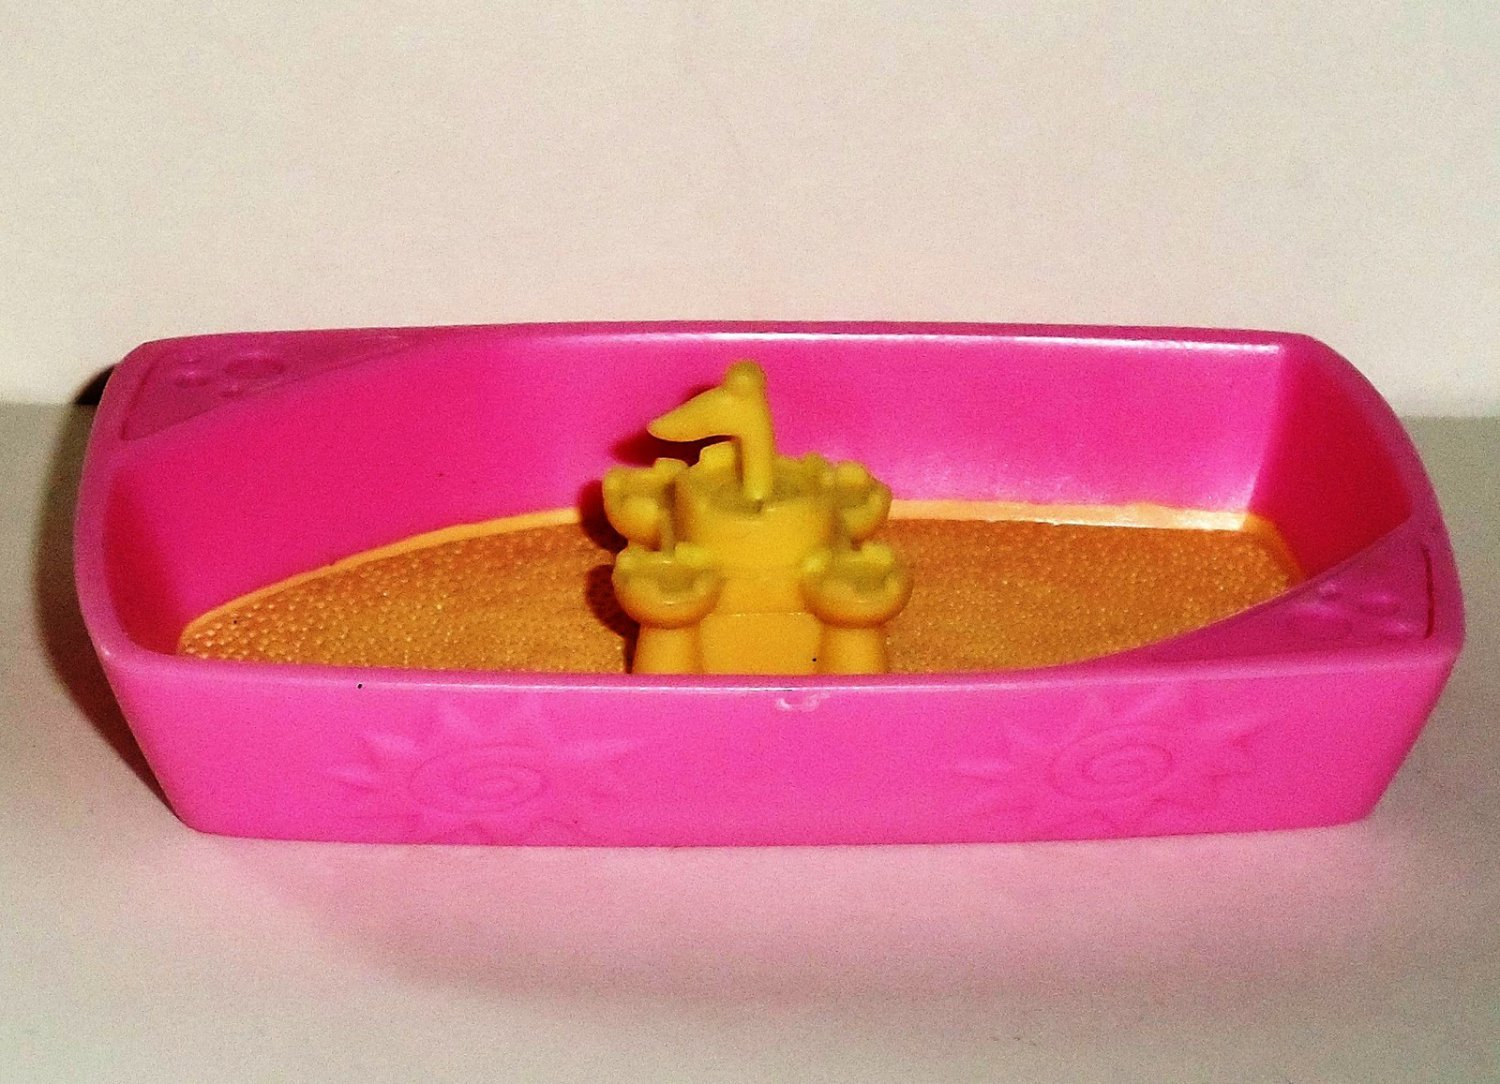 Littlest Pet Shop Pink and Yellow Cat Litter Box Sandbox Accessory Hasbro 2006 Loose Used